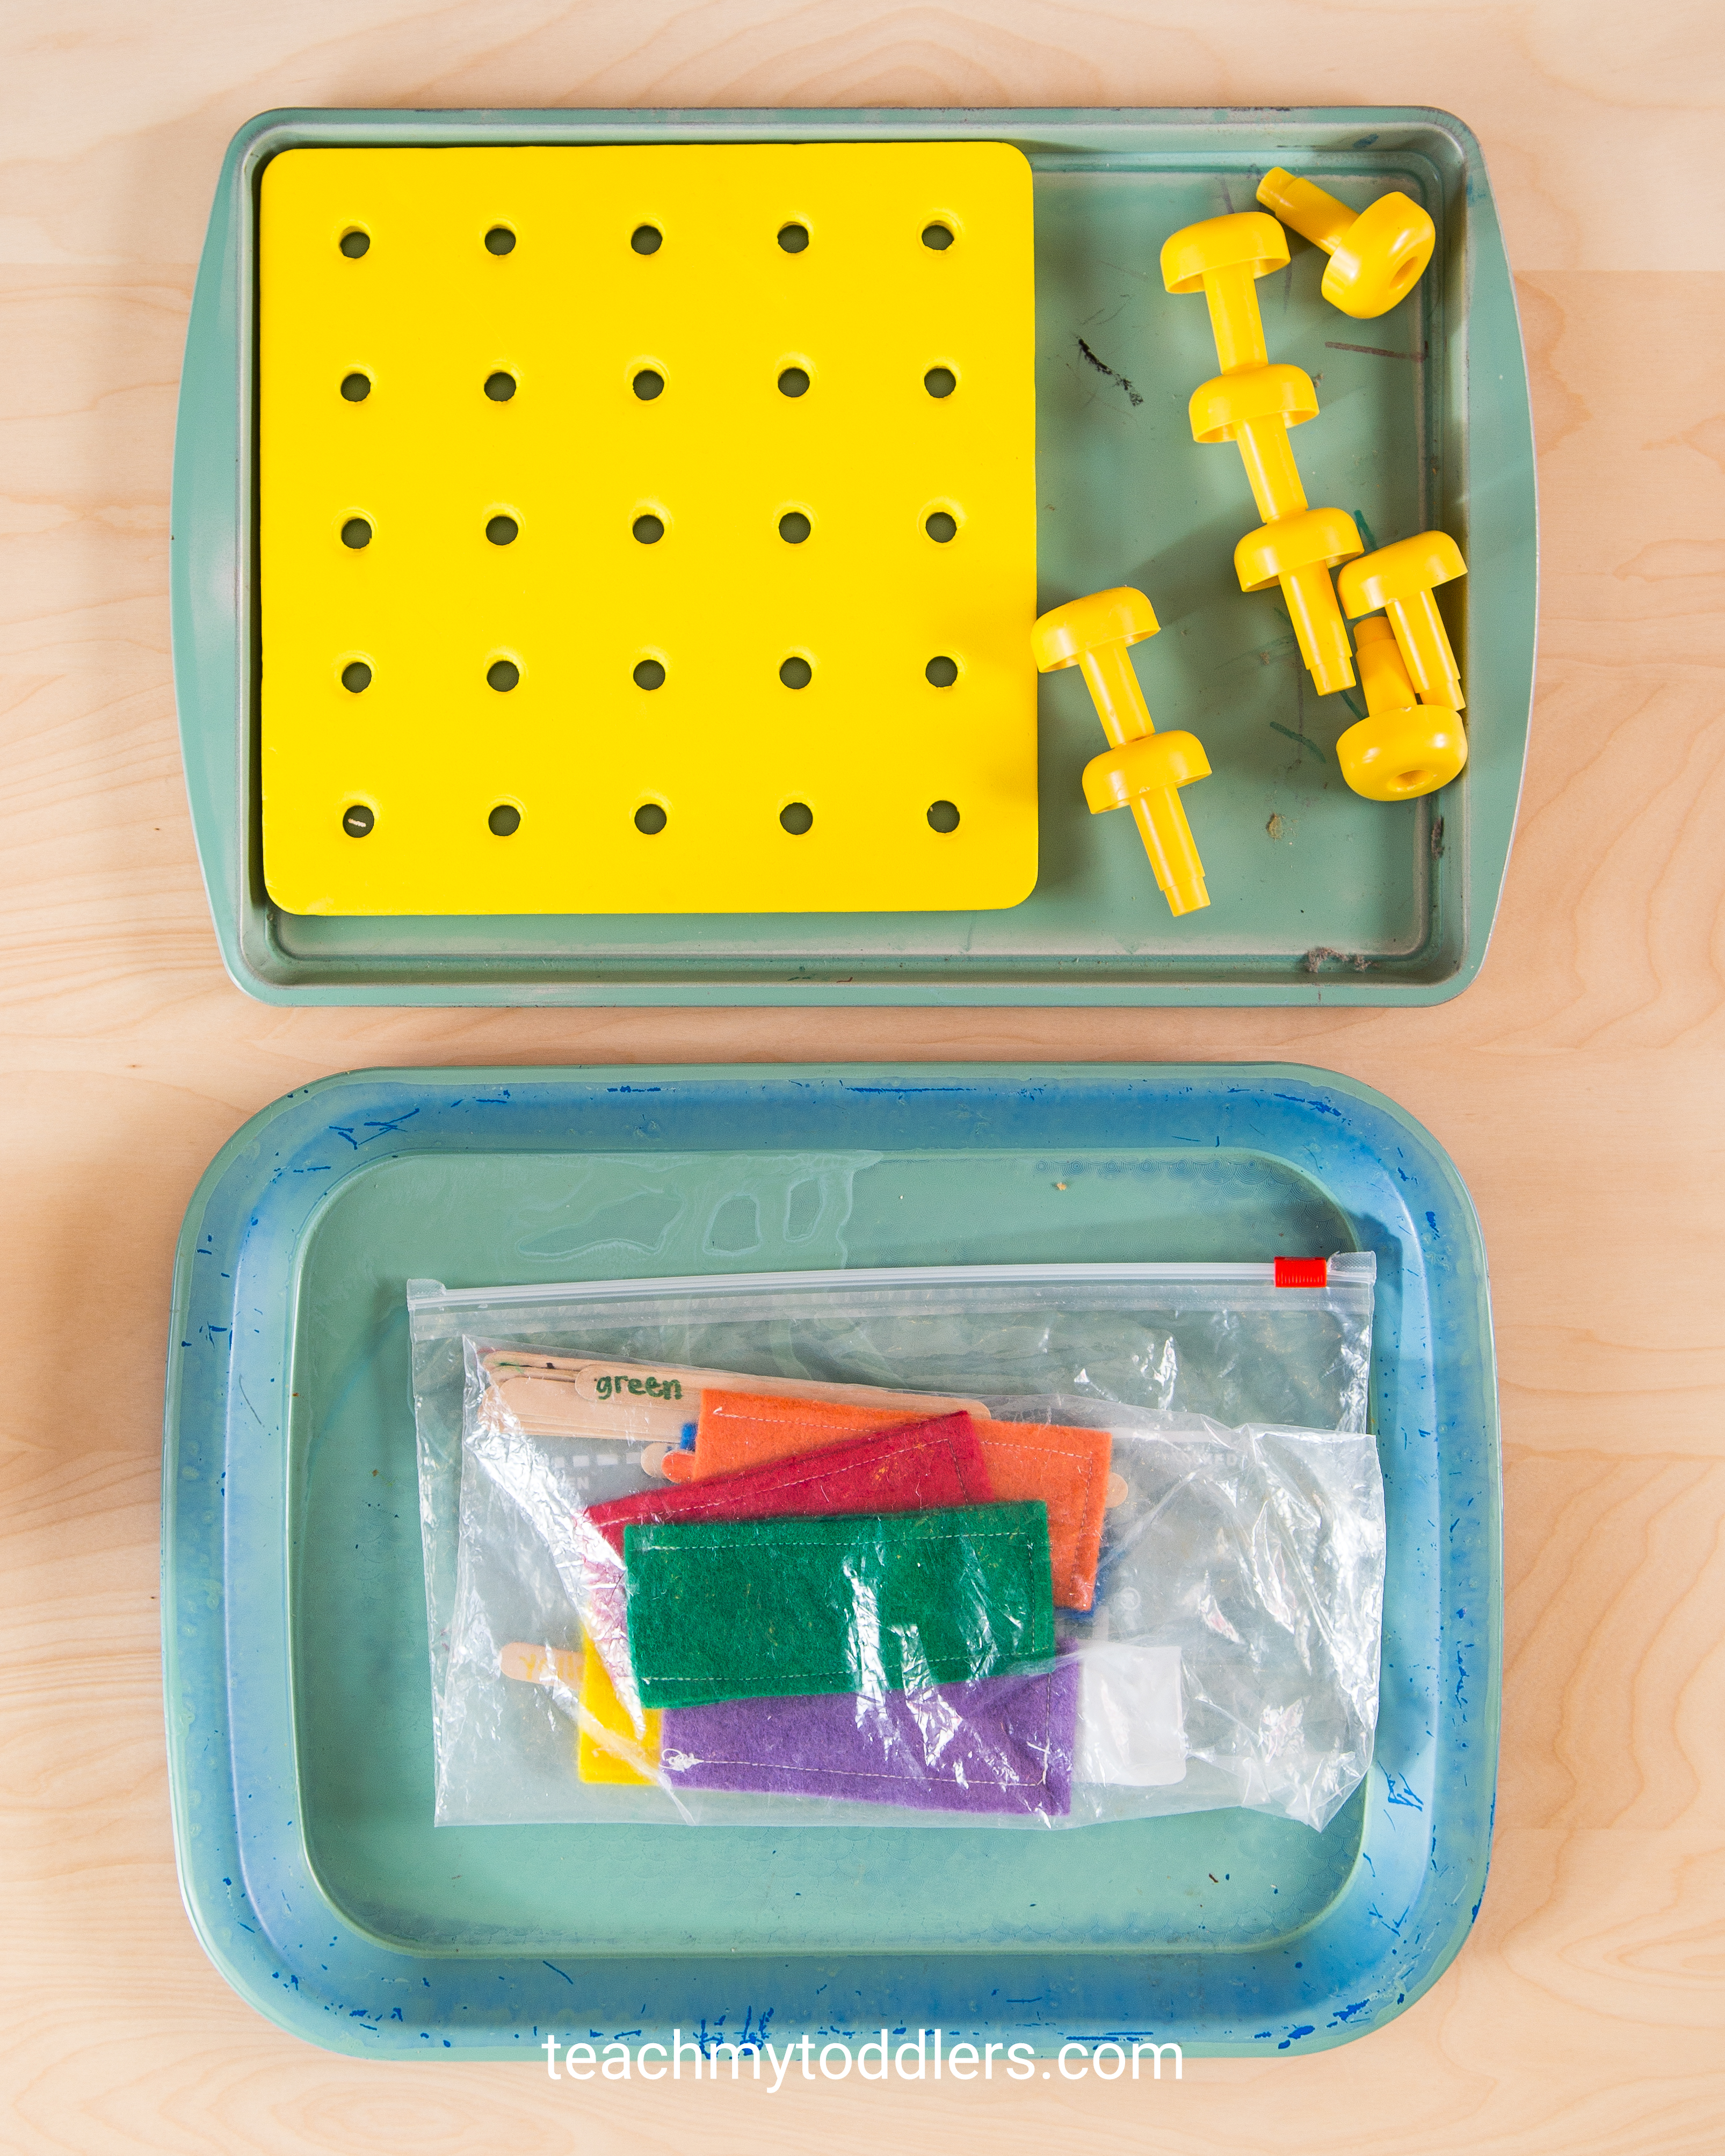 A fun game to teach your toddler the color yellow